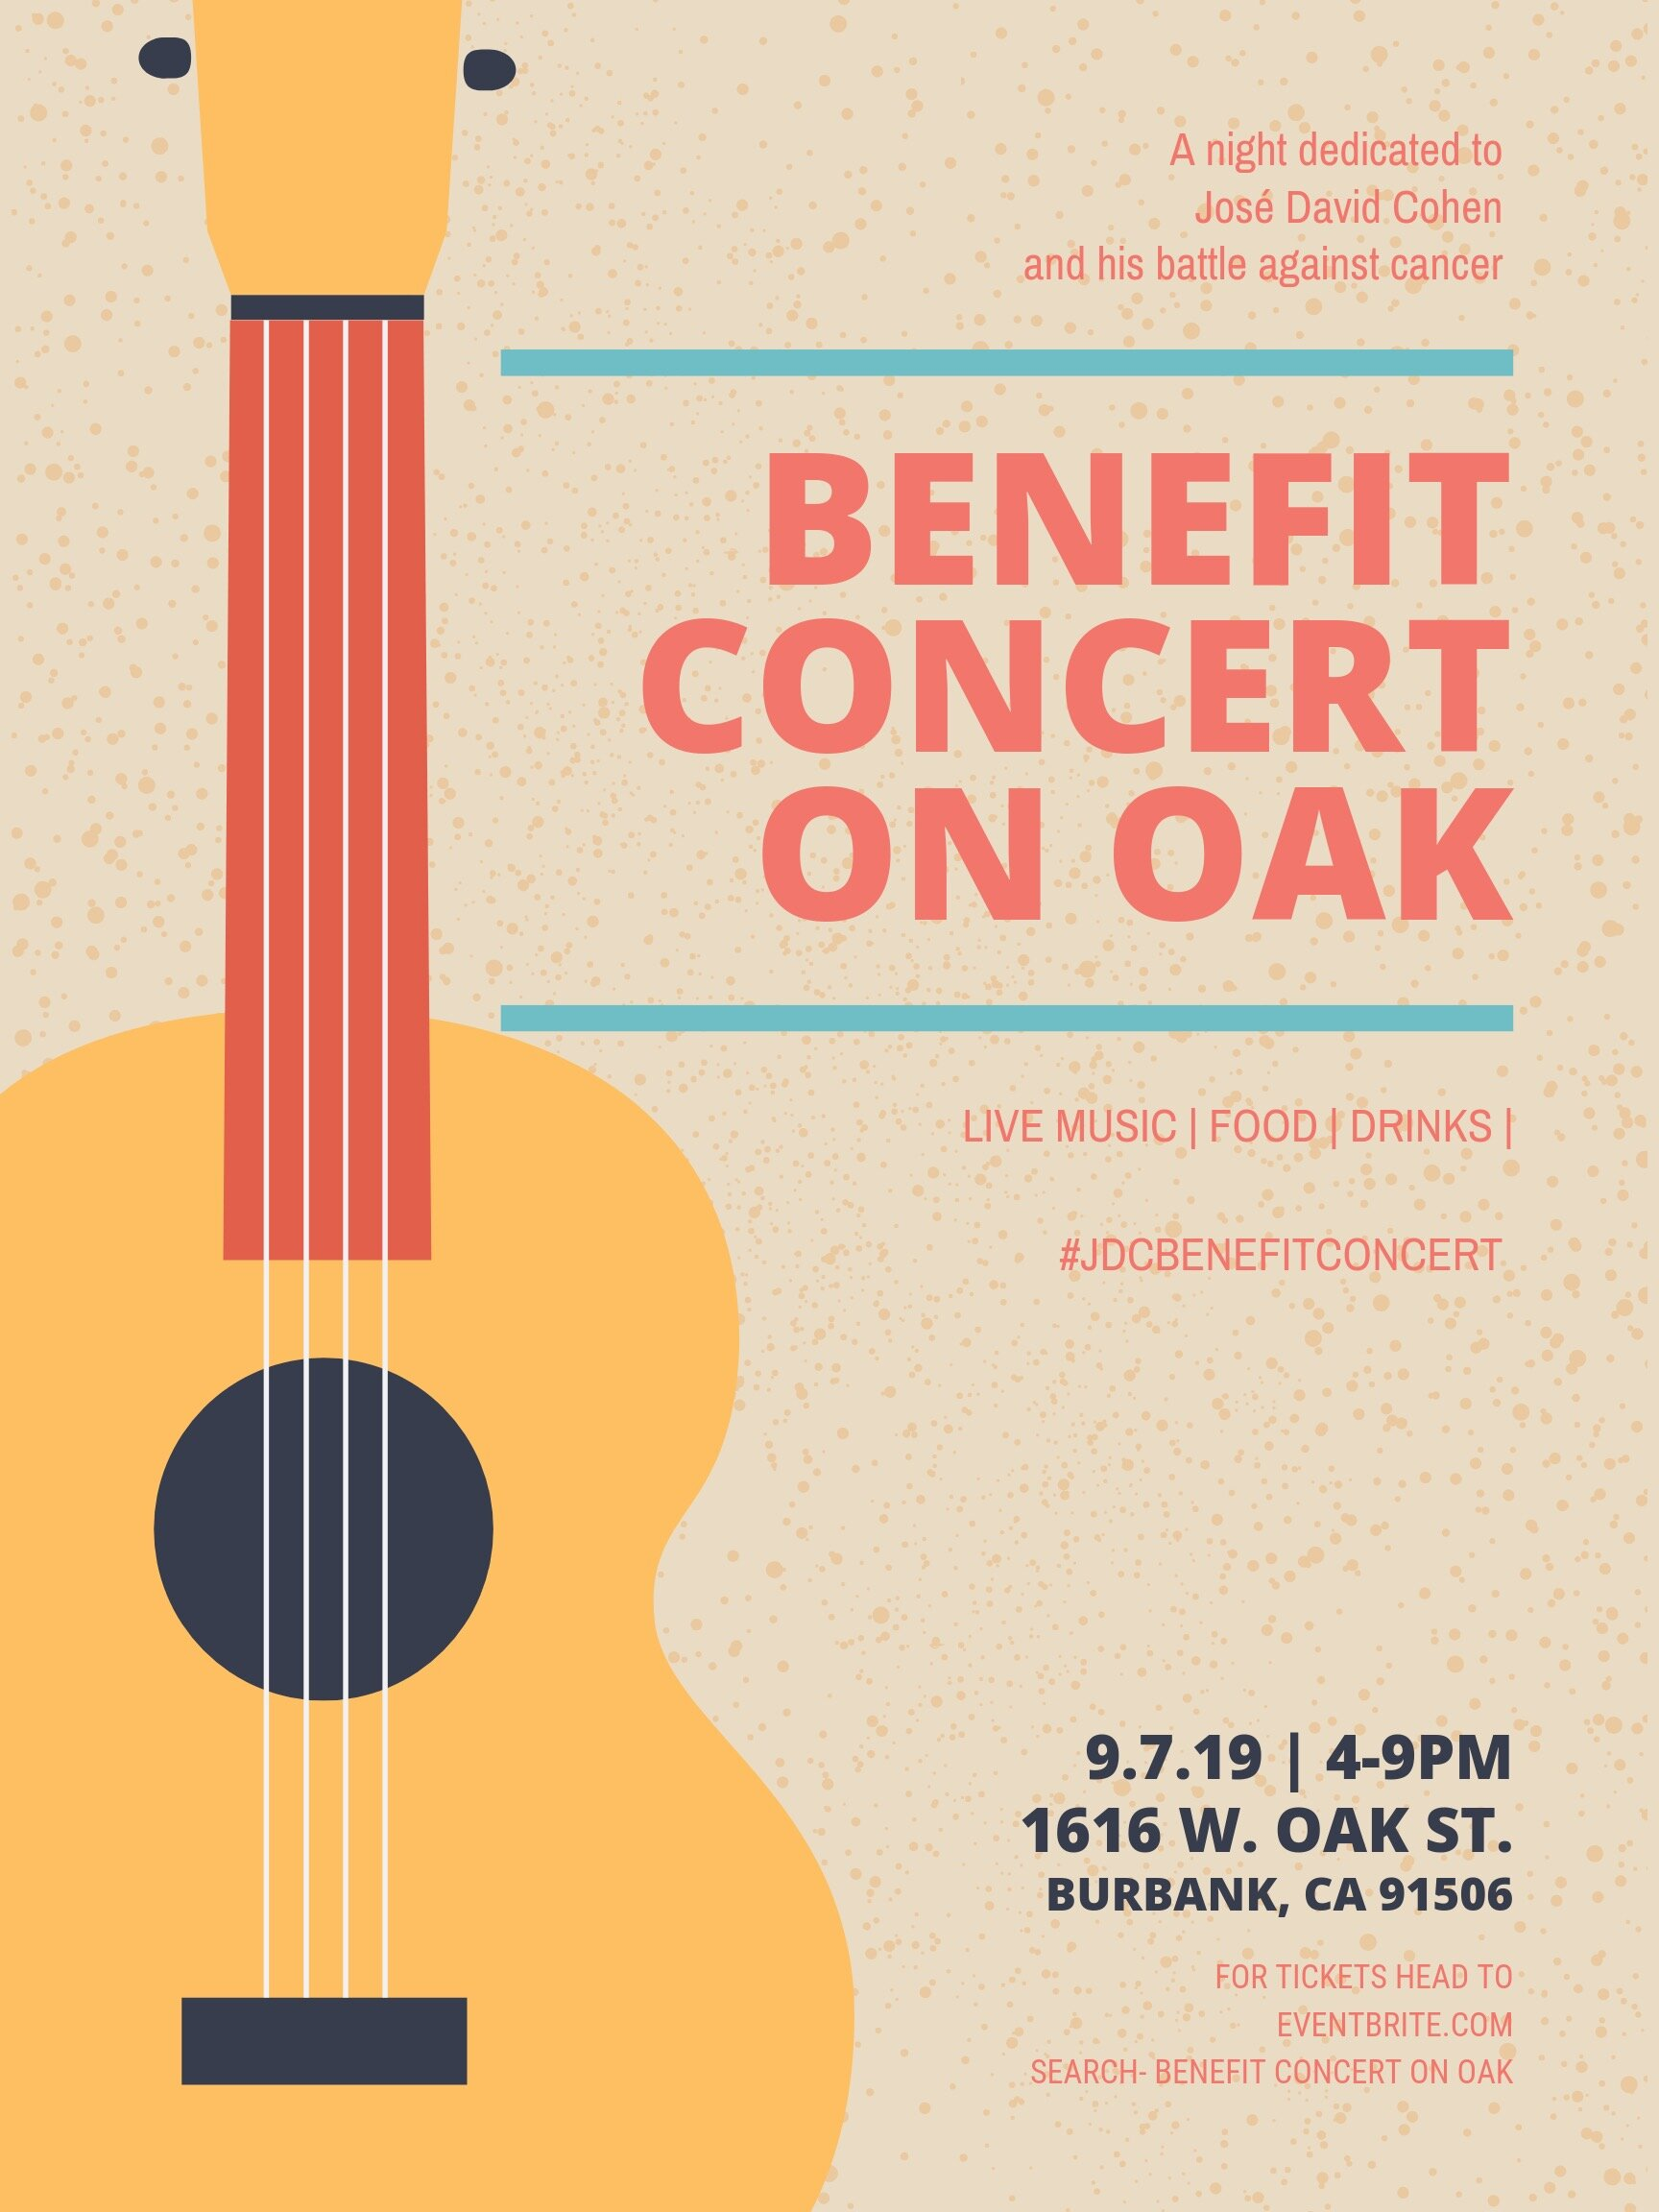 """Show at the """"Benefit concert on oak"""" - Jean performed at the """"Benefit concert on oak"""" on 09.07.2019 in Burbank, CA."""